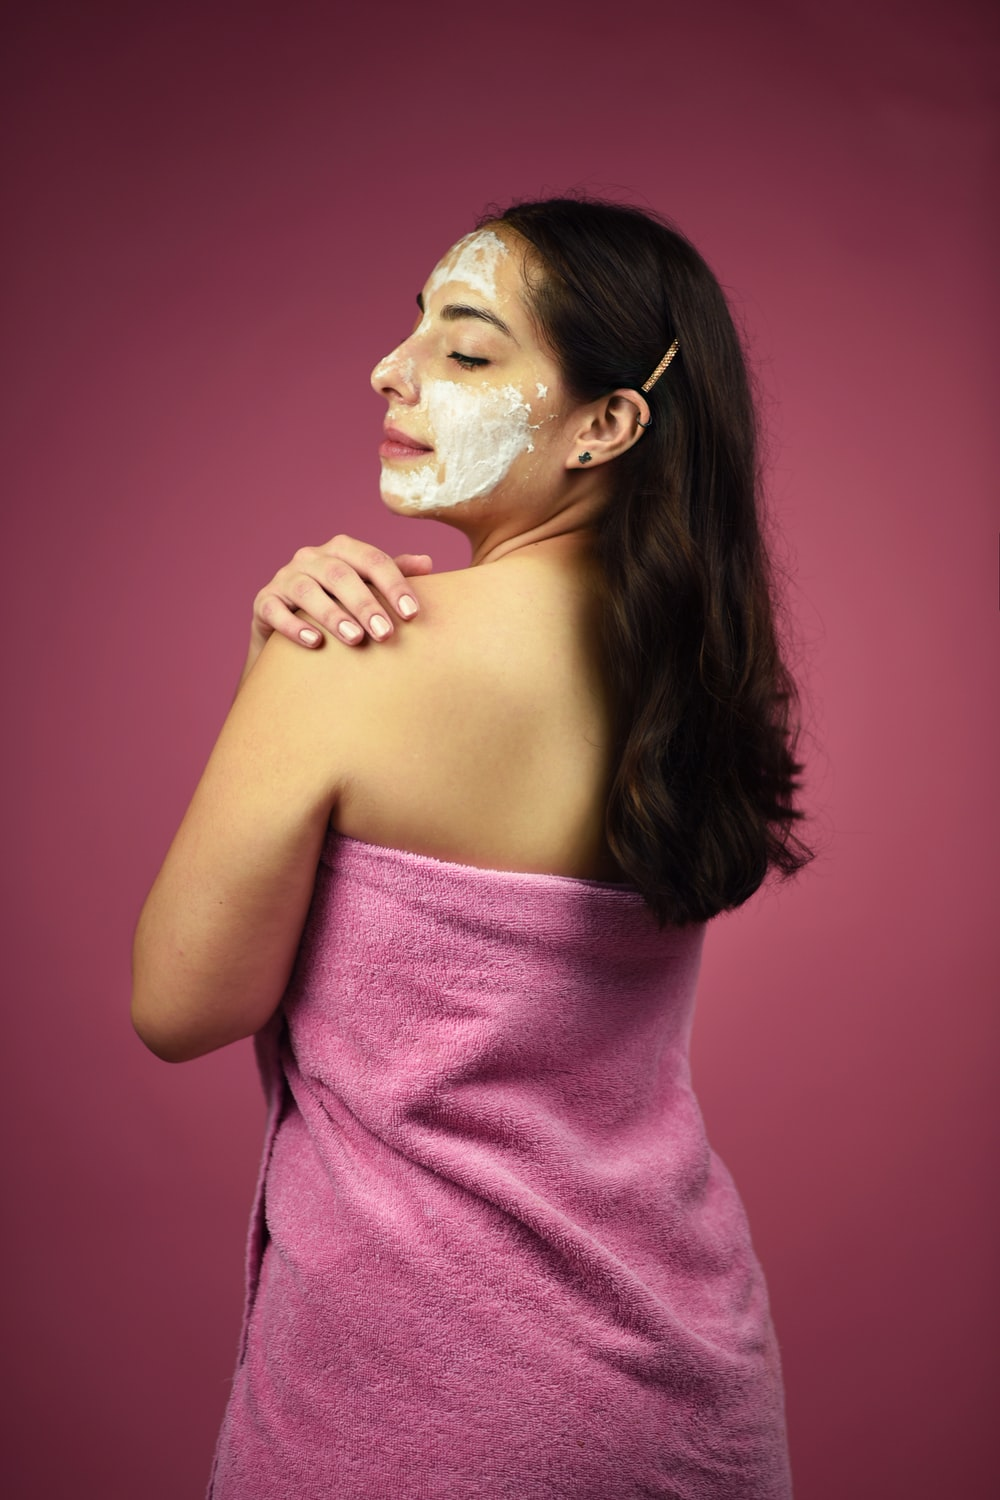 woman looking over her left shoulder wearing pink towel and white cream mask